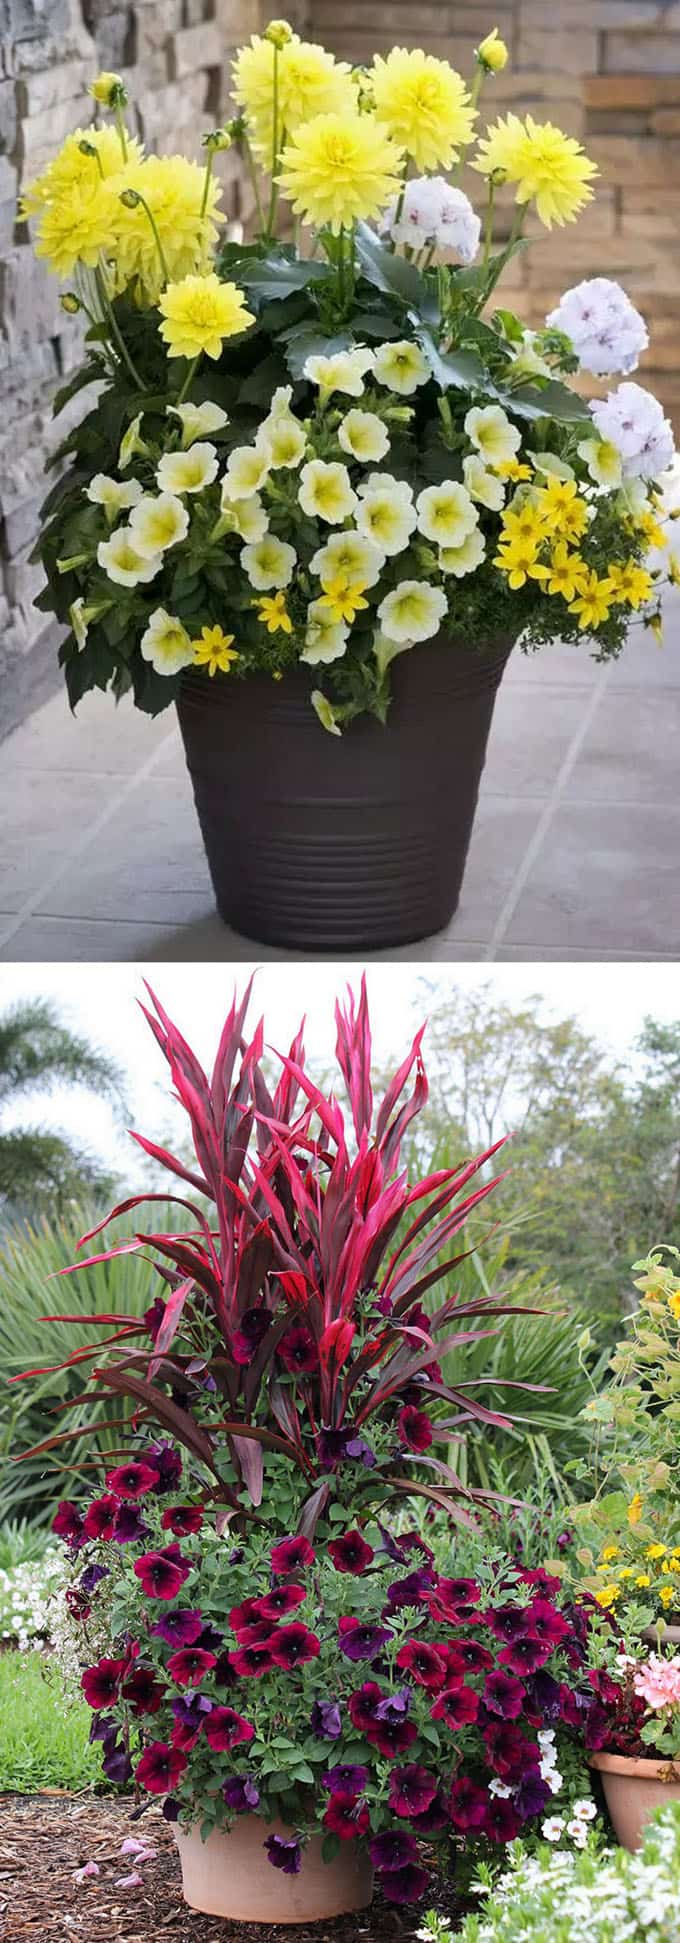 A stunning container garden does not have to have all the colors of a  rainbow. Sometimes variations of one color, such as the yellows or burgundy  colors ... 40893cda43f